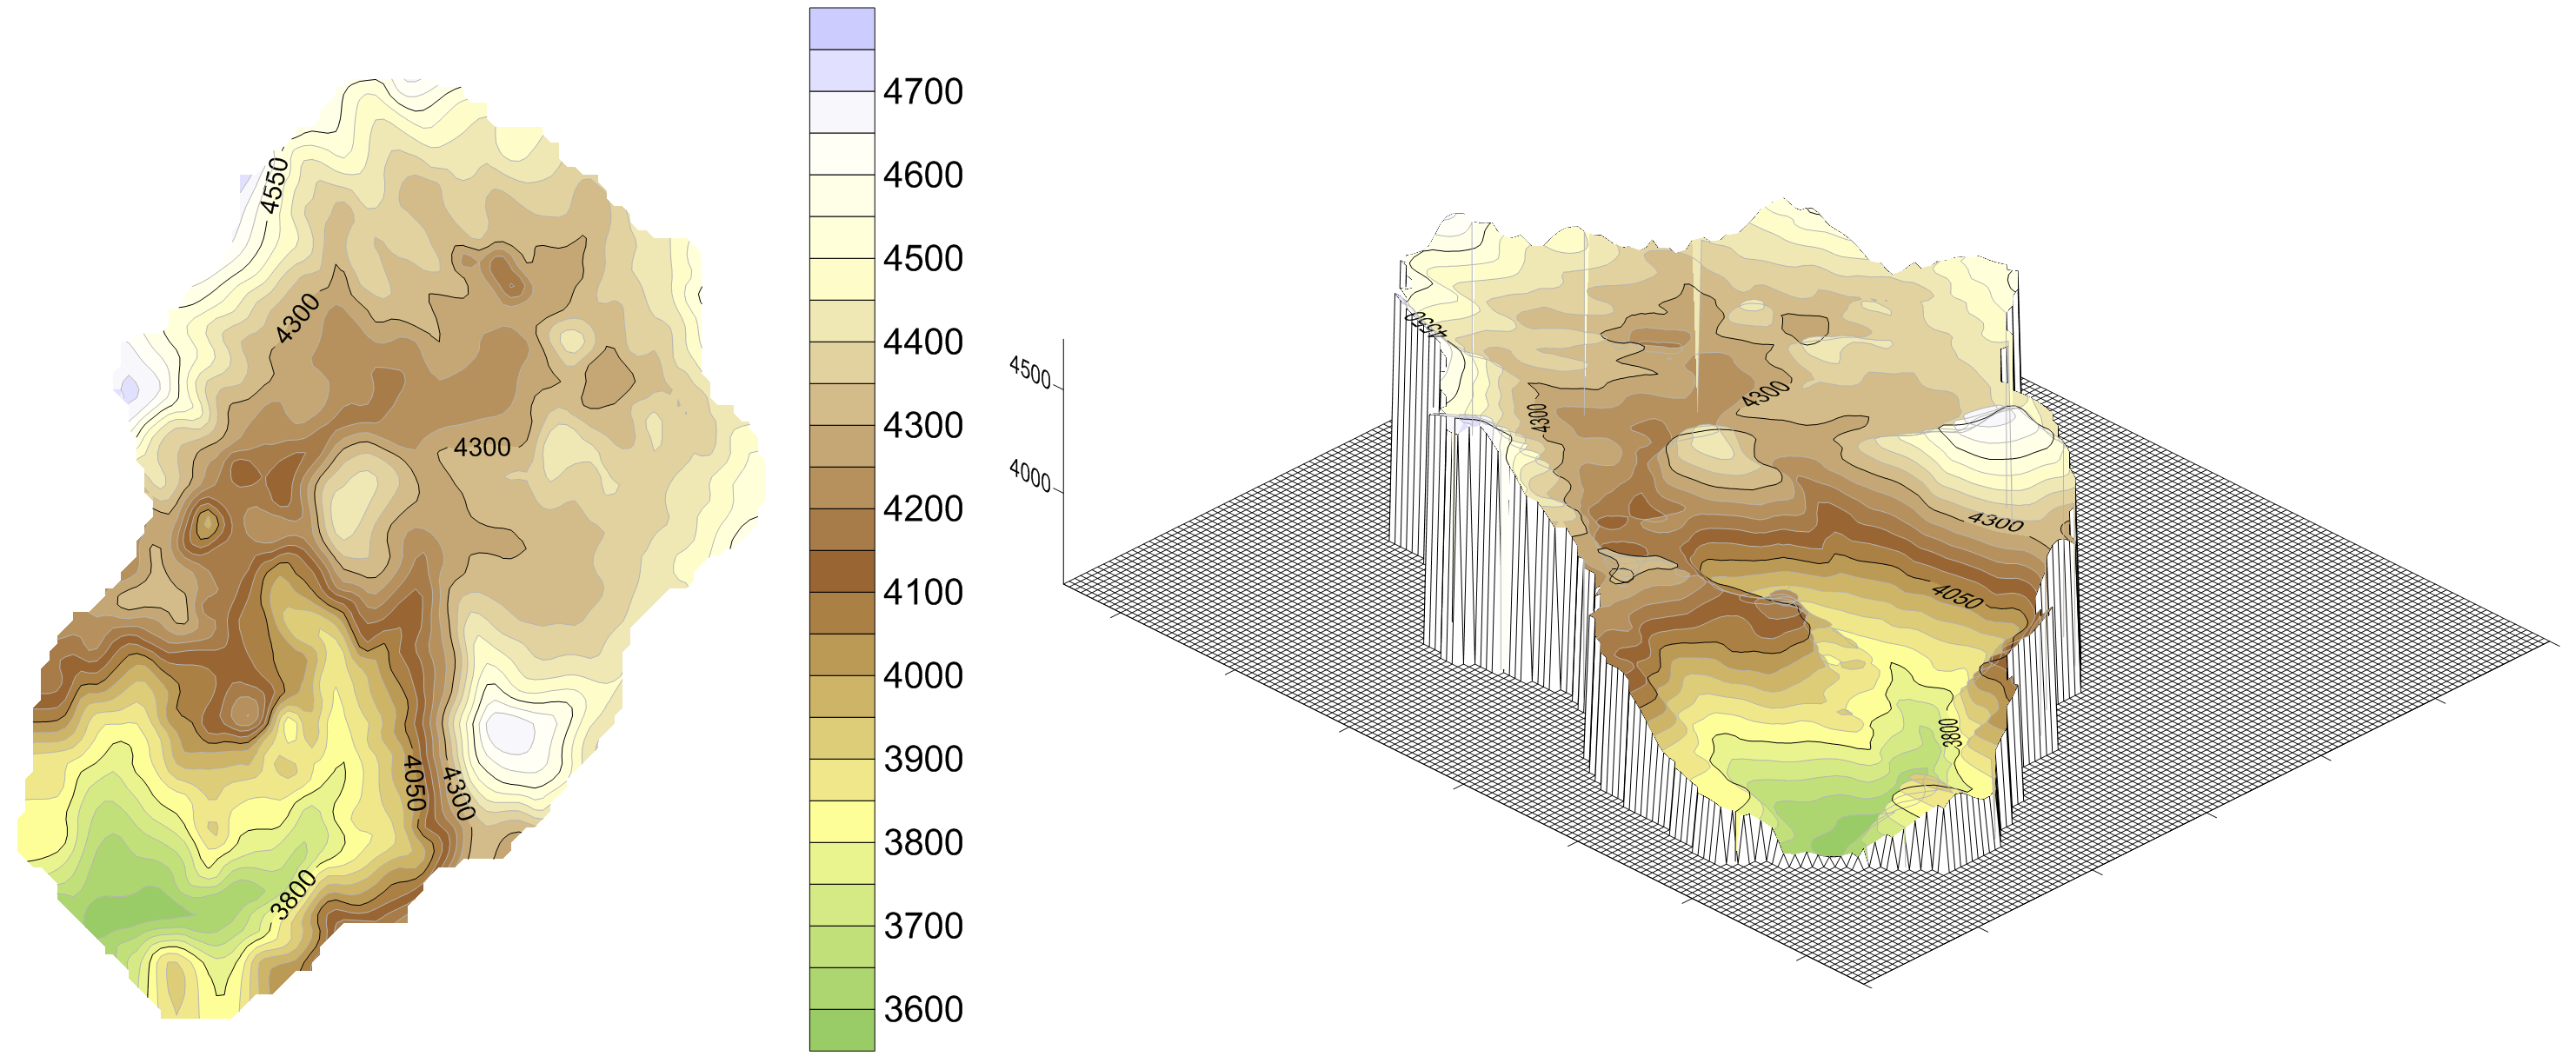 Surfer contour mapping software: surface elevation map